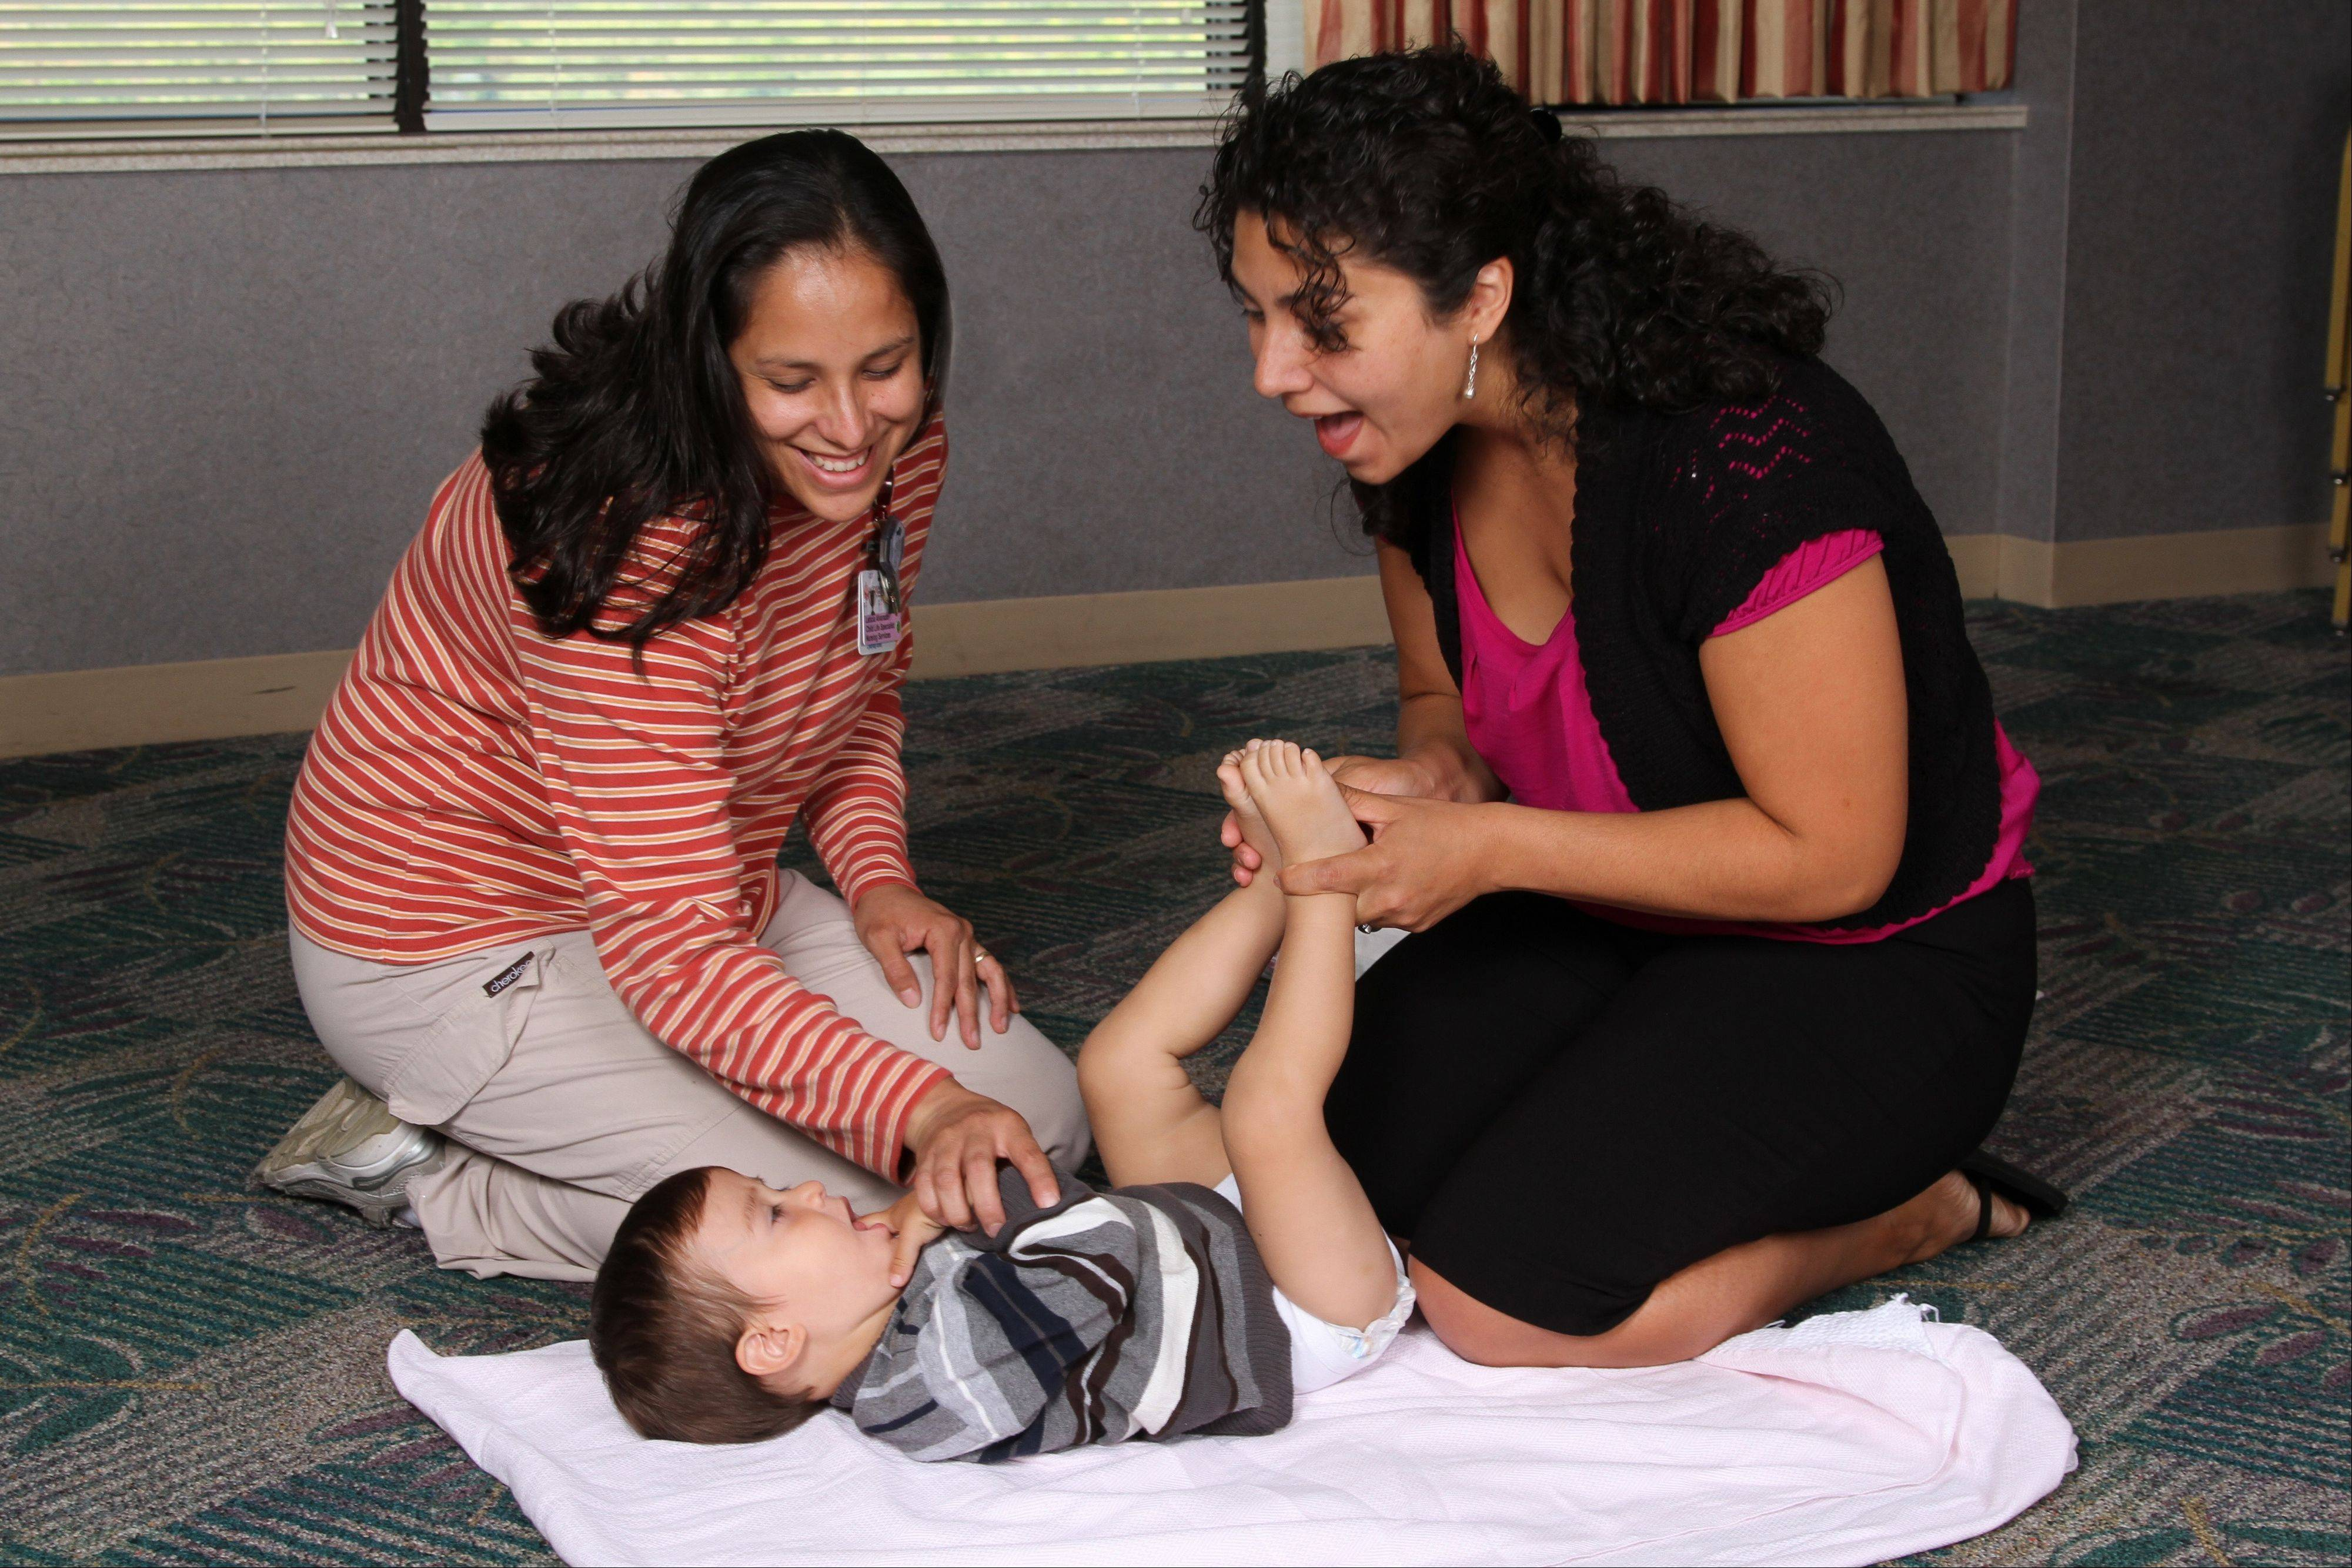 Martha Valdez of Schaumburg learned infant massage after her son Daniel was born. Leticia Alvarado, left, is a certified infant massage educator for St. Alexius Medical Center.